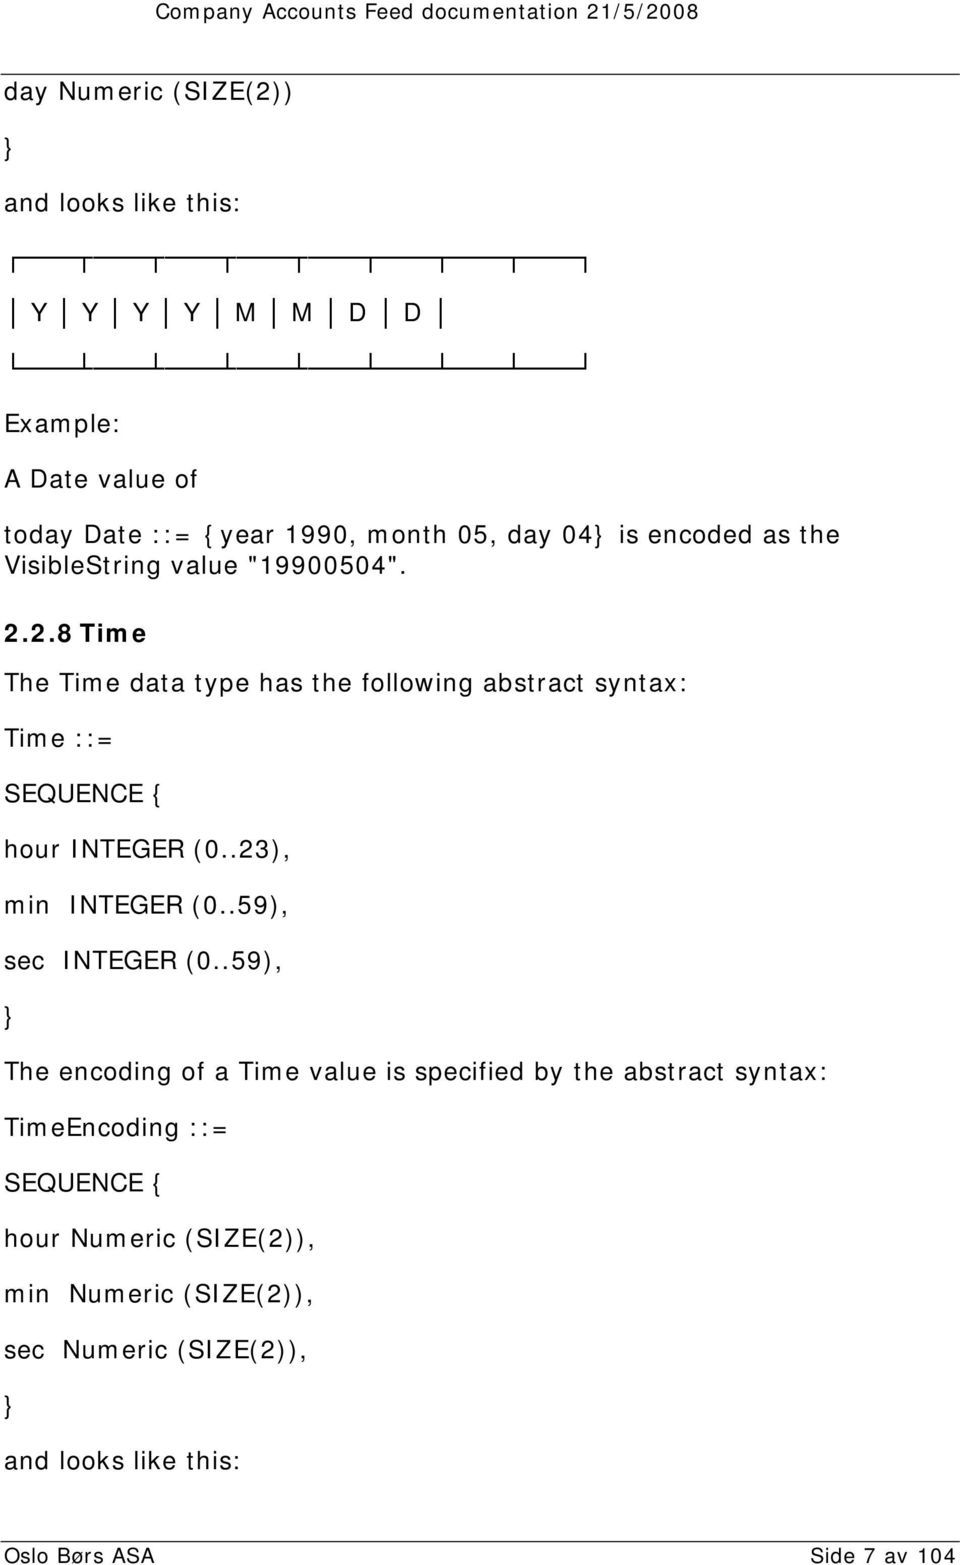 2.8 Time The Time data type has the following abstract syntax: Time ::= SEQUENCE { hour INTEGER (0..23), min INTEGER (0.